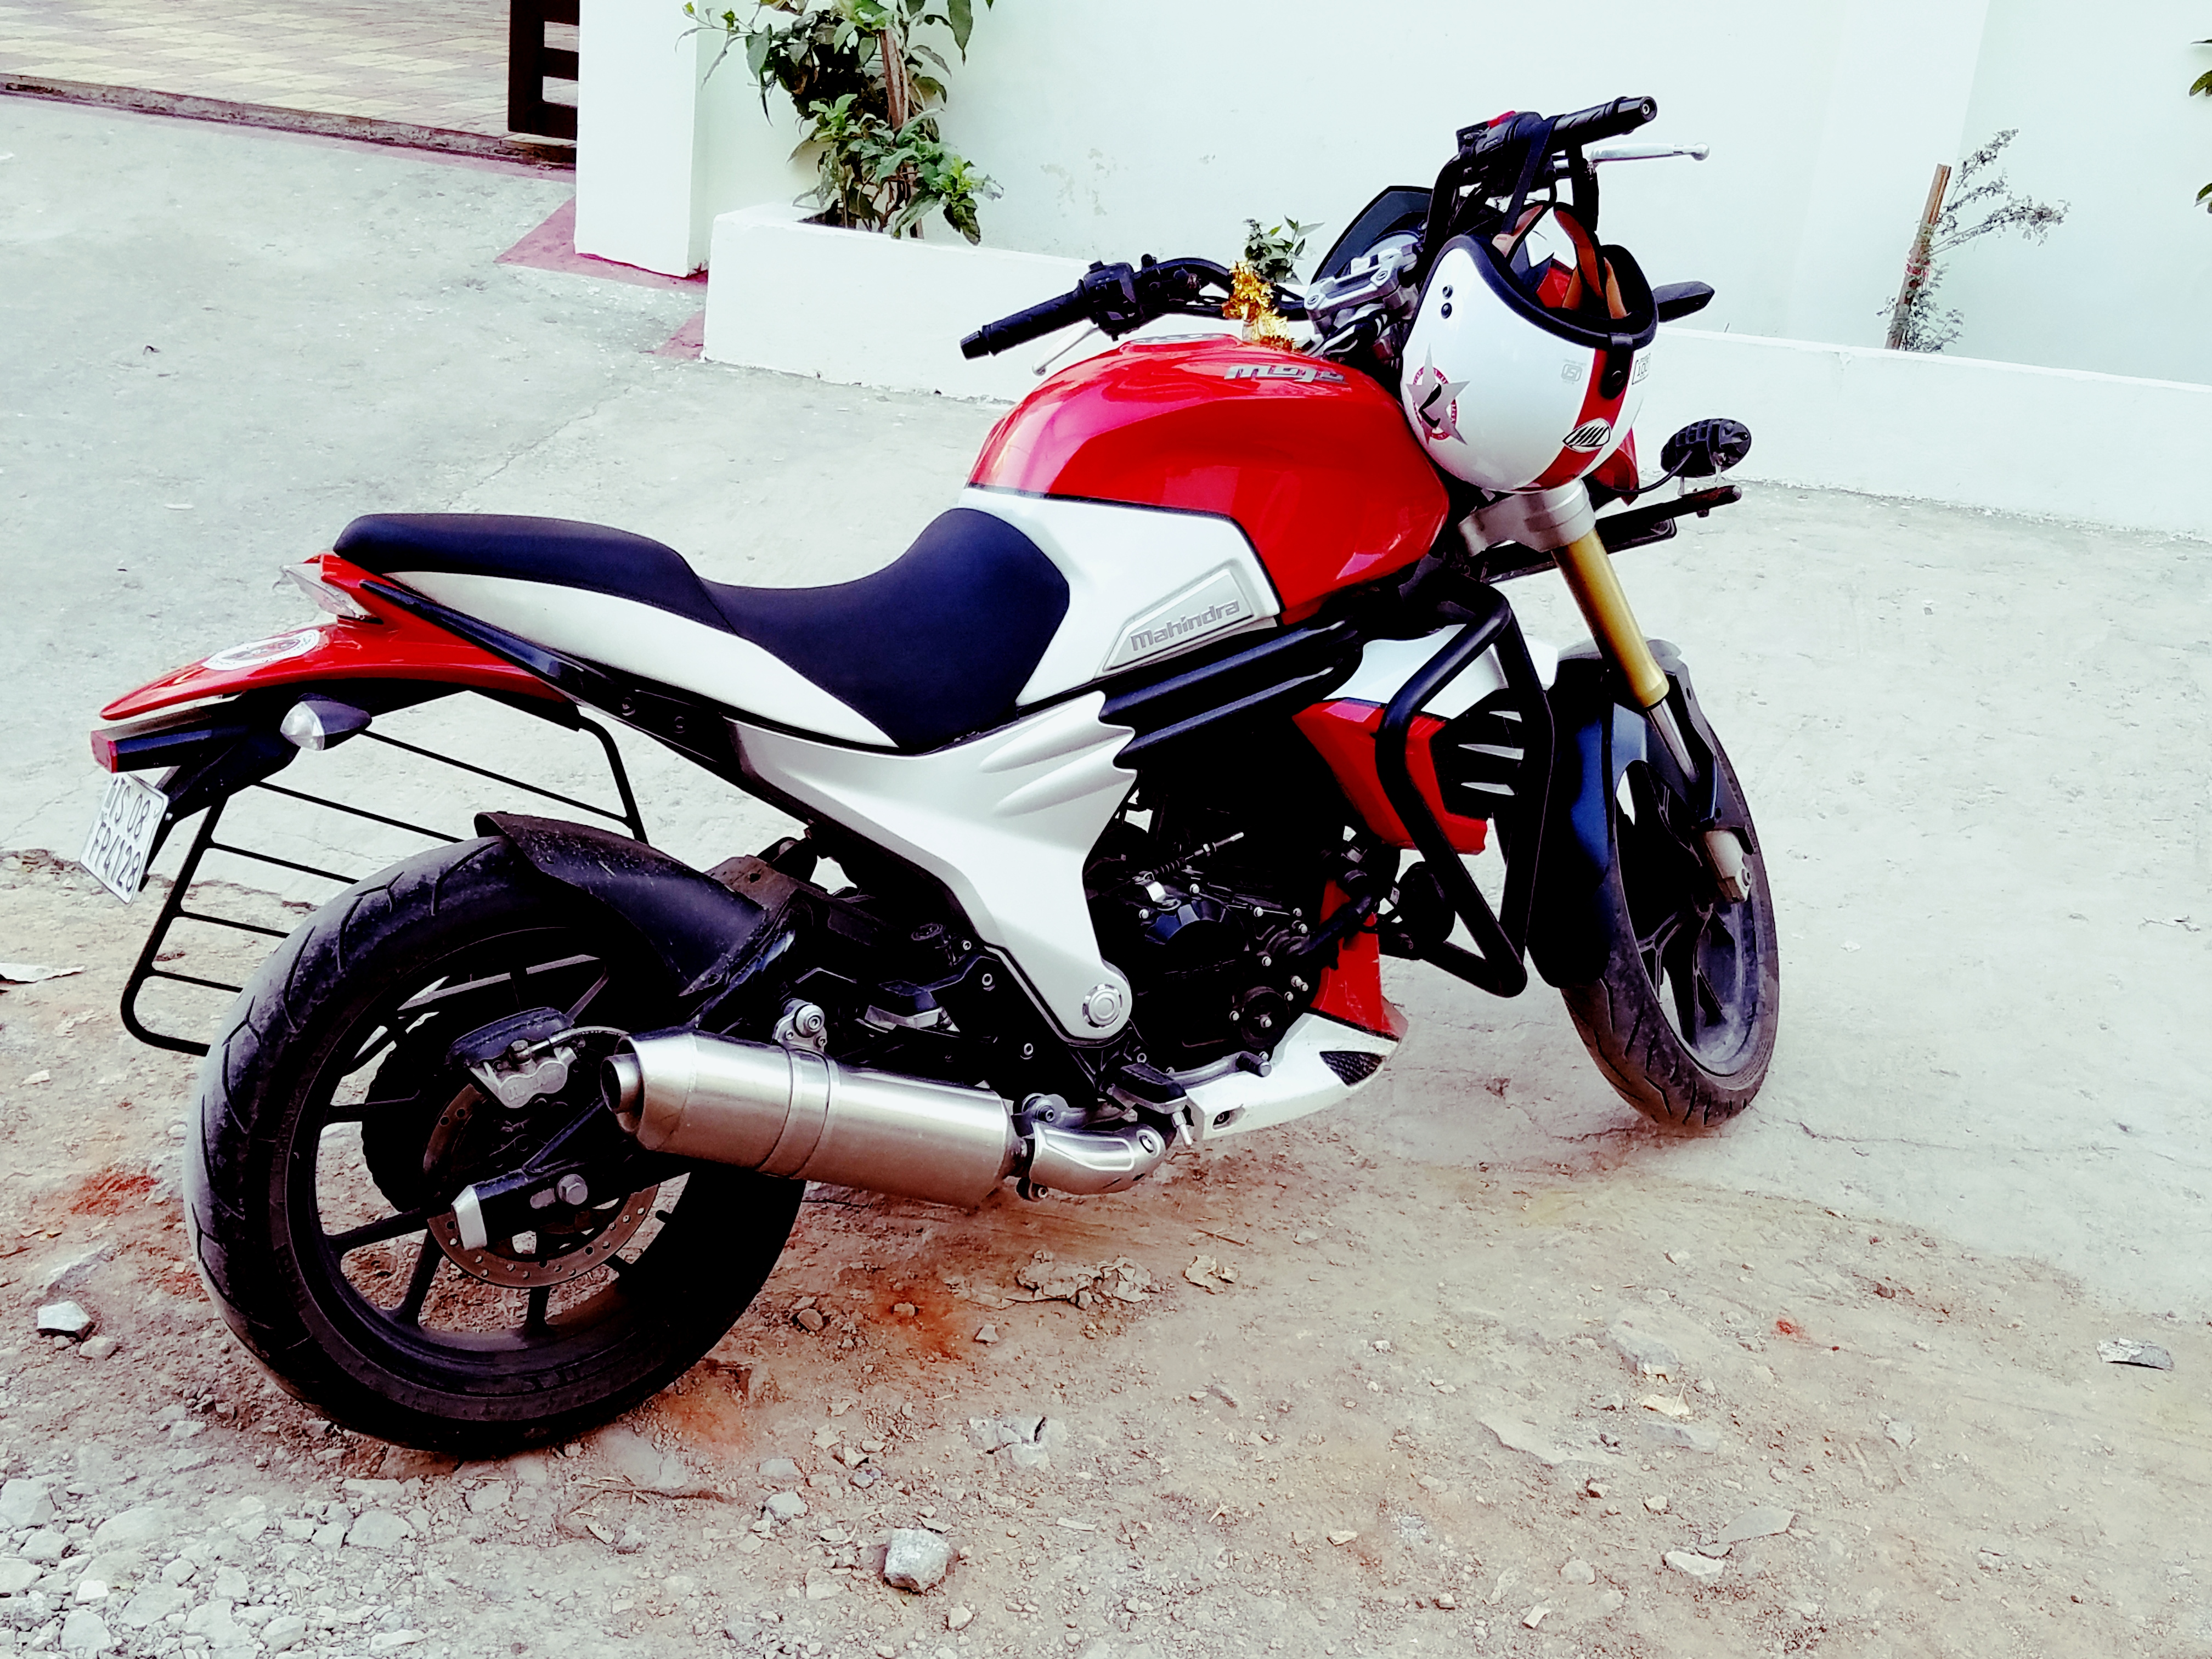 Used Mahindra Mojo in India with warranty. Loan and ...